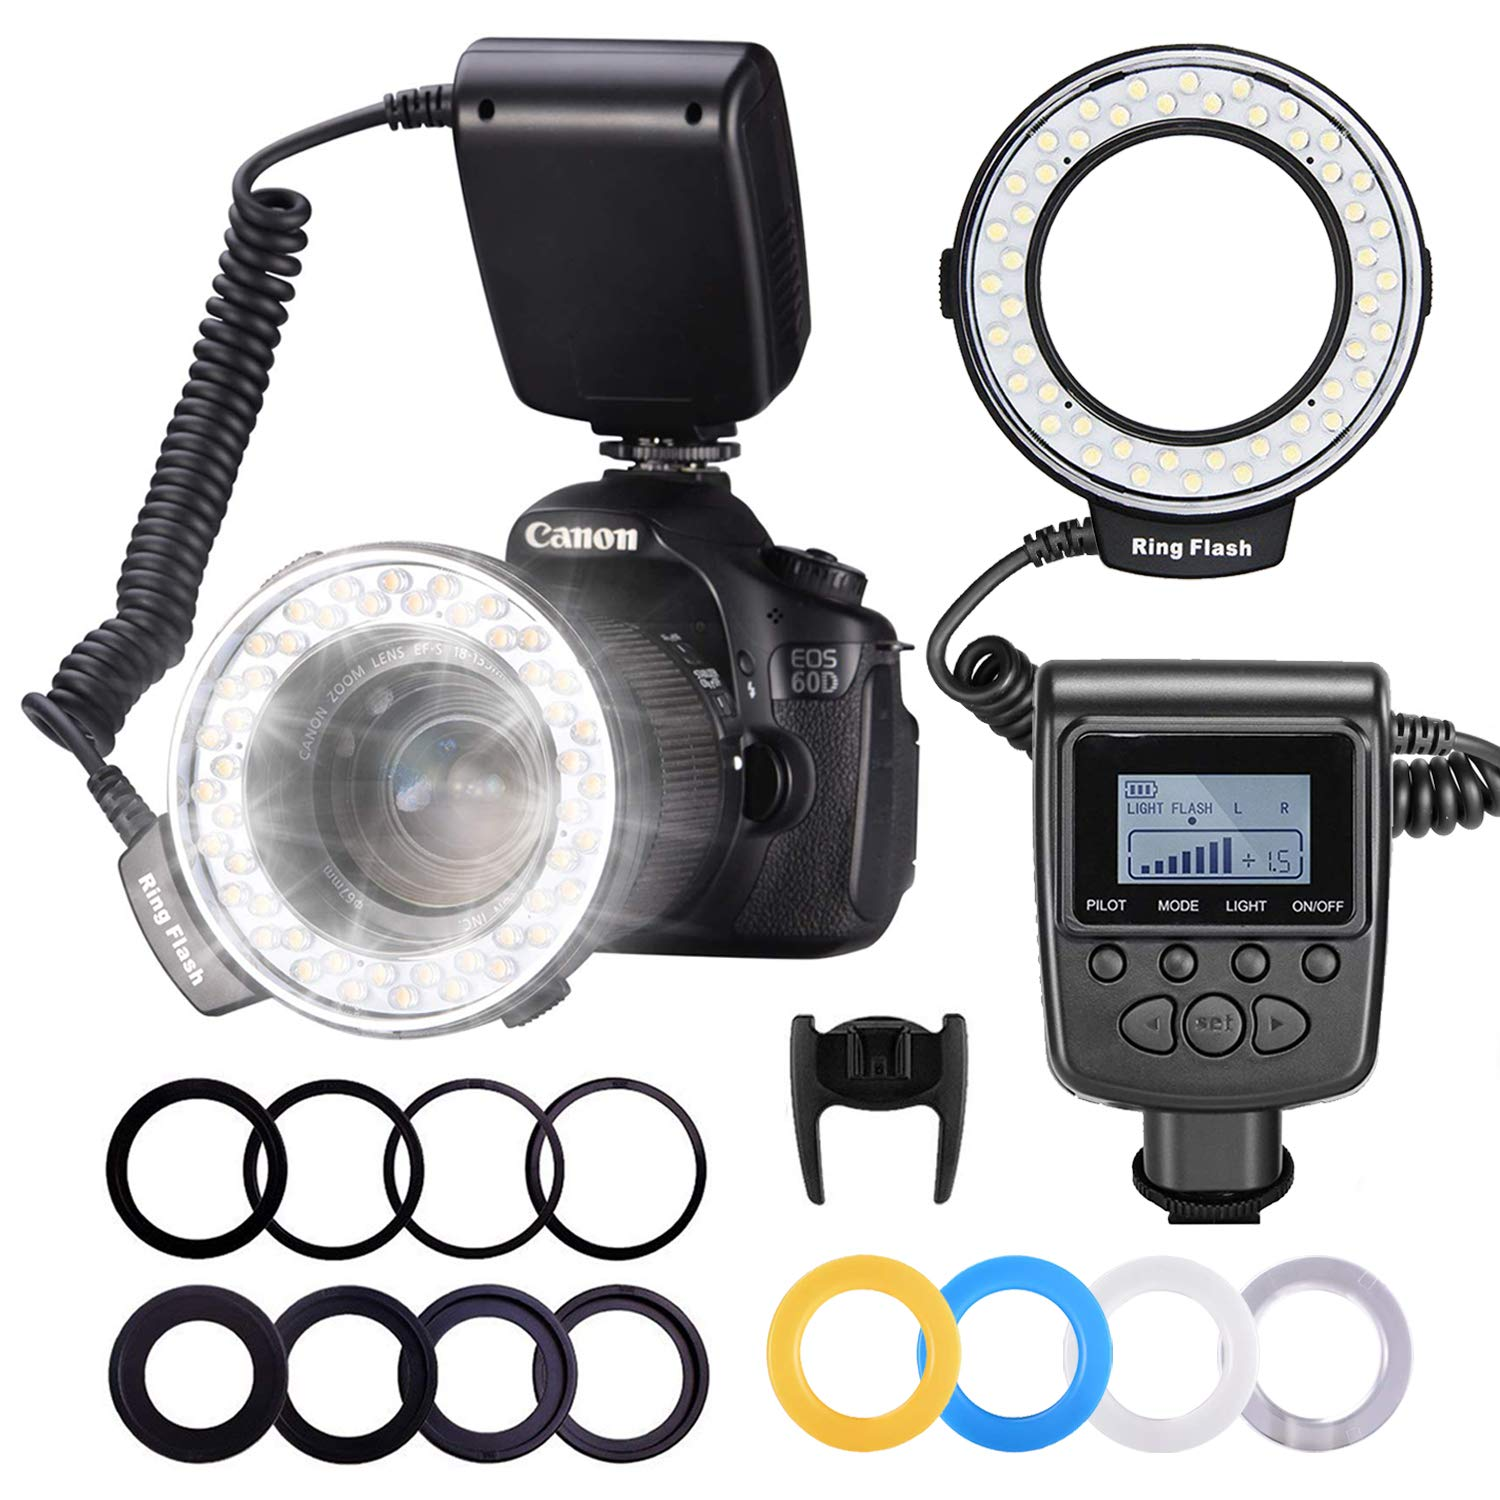 Neewer 48 Macro LED Ring Flash Bundle with LCD Display Power Control, Adapter Rings and Flash Diffusers for Canon 650D,600D,550D,70D,60D,5D Nikon D5000,D3000,D5100,D3100,D7000,D7100,D800,D800E,D60 by Neewer